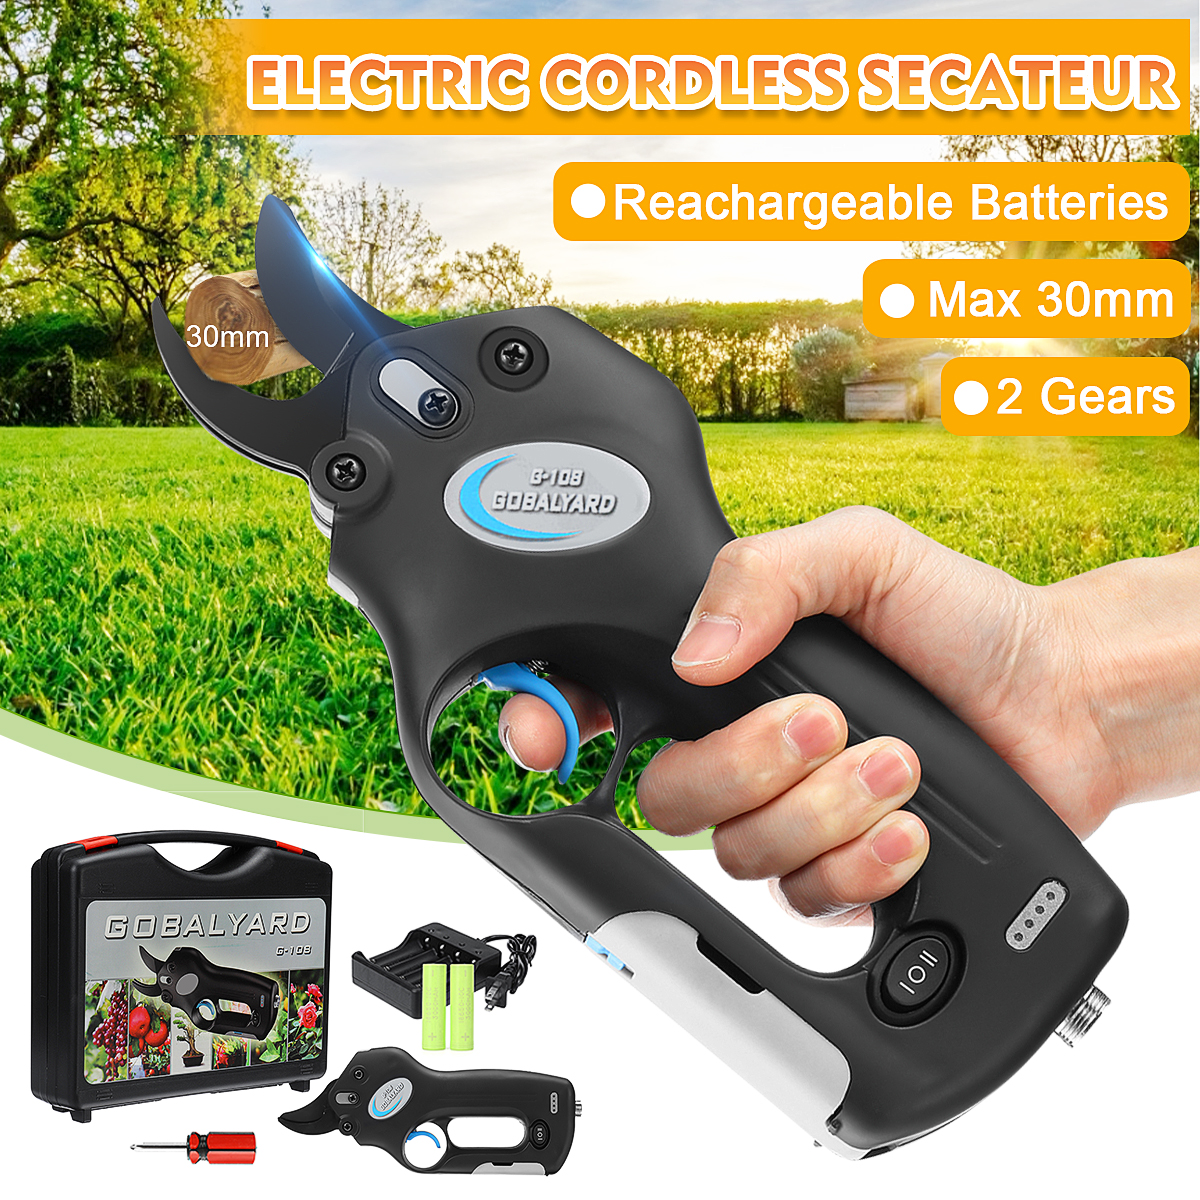 Rechargeable Electric Pruning Scissors Pruning Shears Garden Pruner Secateur Branch Cutter Cutting Tool With 2 Battery